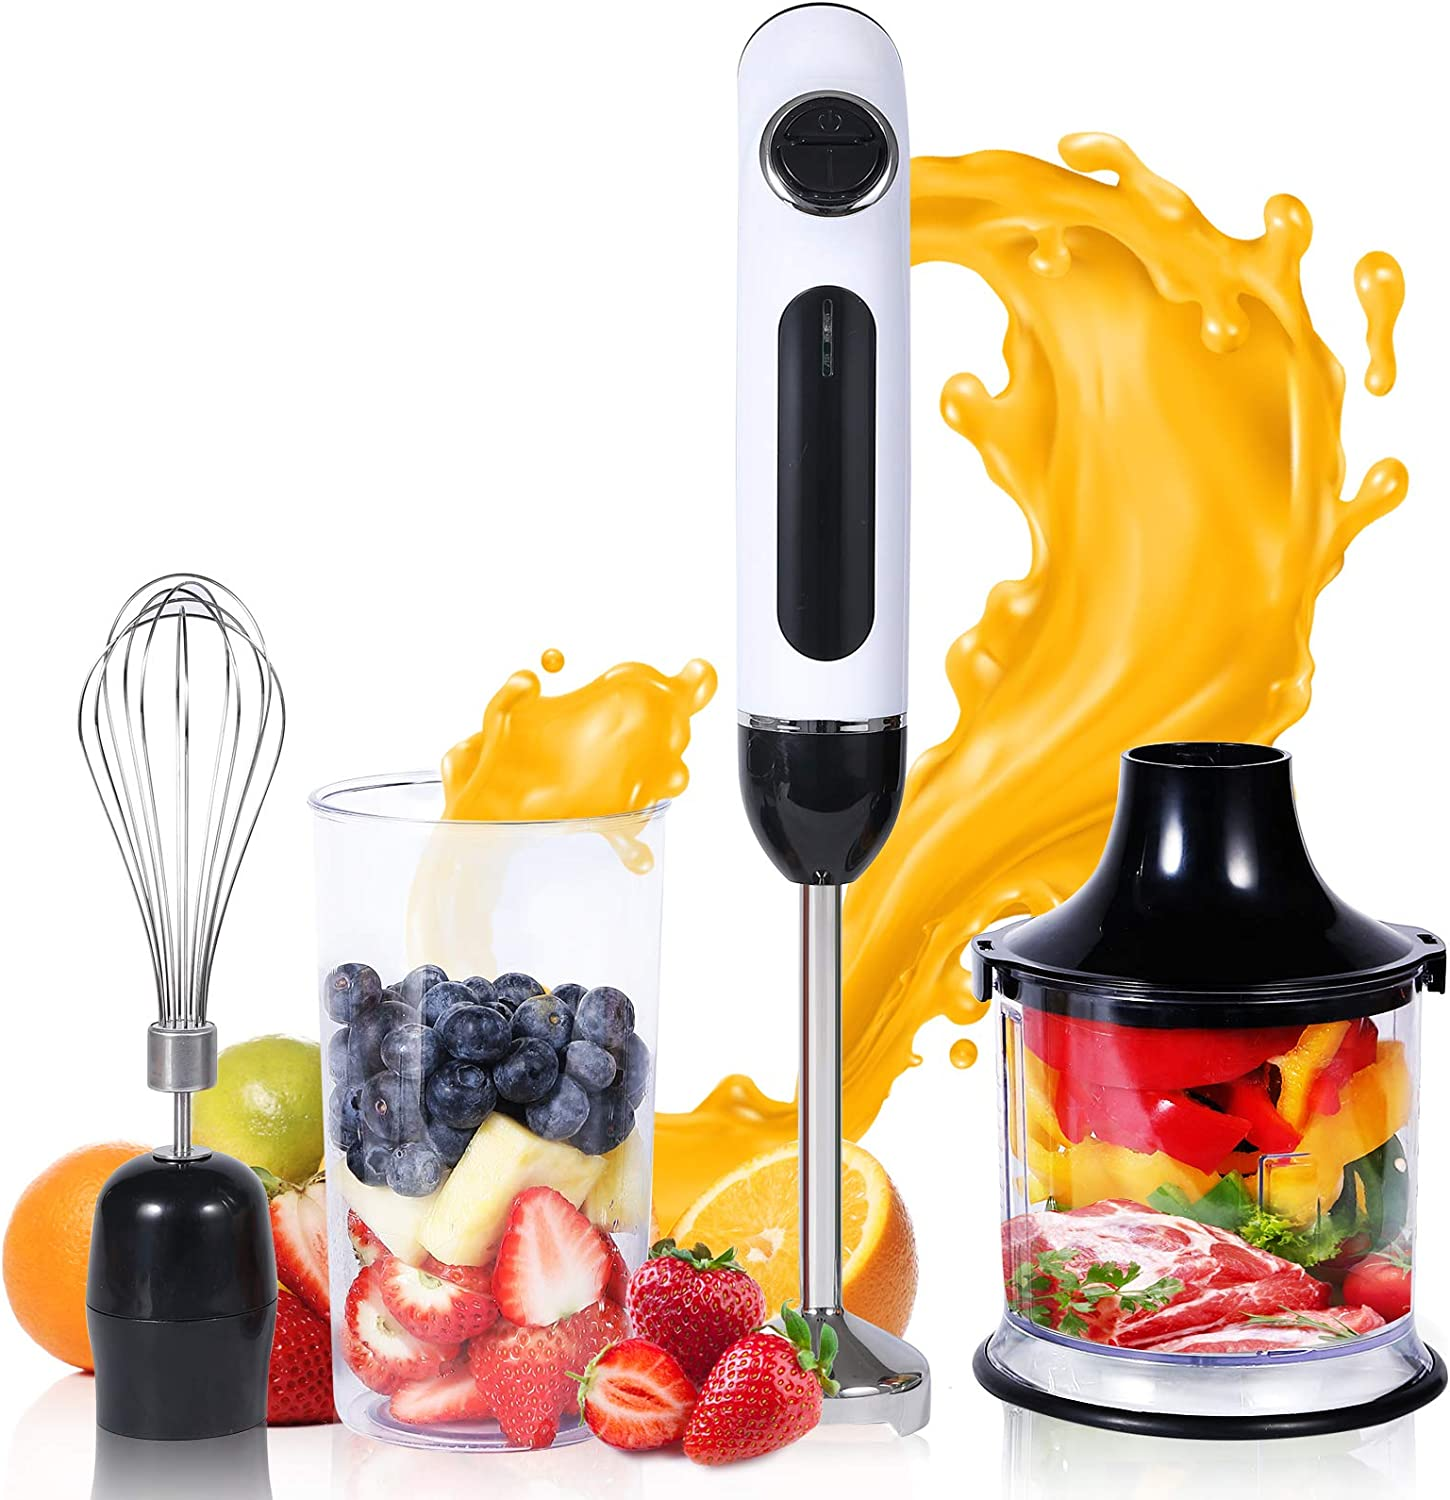 Cordless Hand Blender USB Rechargeable, 4-in-1 Immersion Hand Blender with Sturdy Titanium Plated Stainless Steel Blades, Including 500ml Chopper, 600ml Beaker and Whisk, BPA-Free and Dishwasher Safe